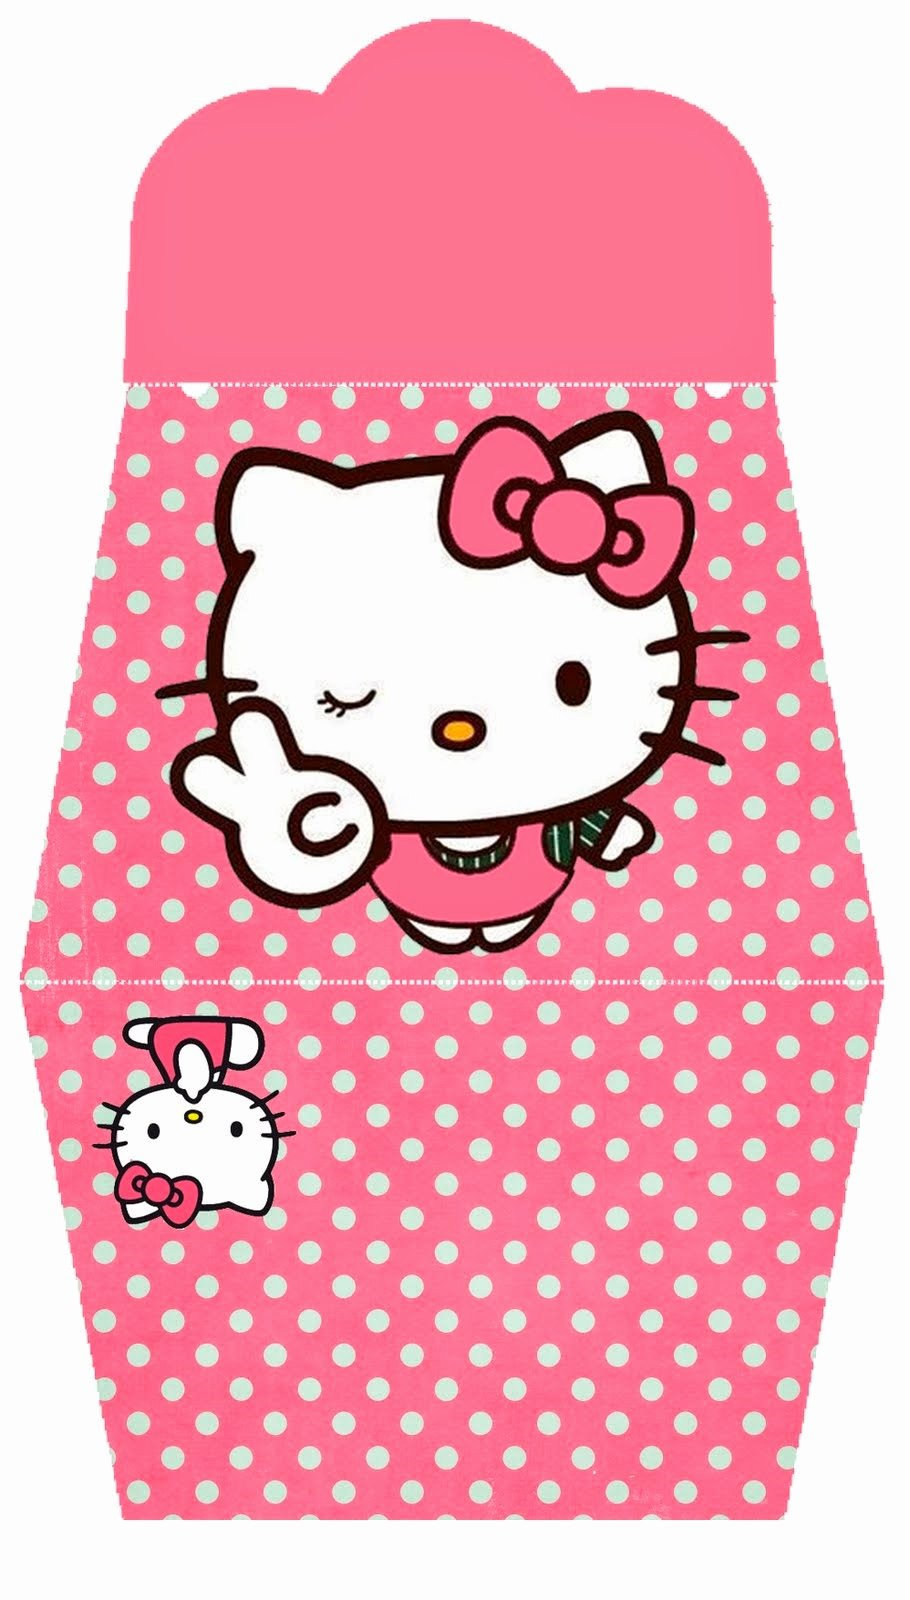 Hello Kitty Printable Invitations Best Of Hello Kitty In Pink Free Printable Purse Invitations